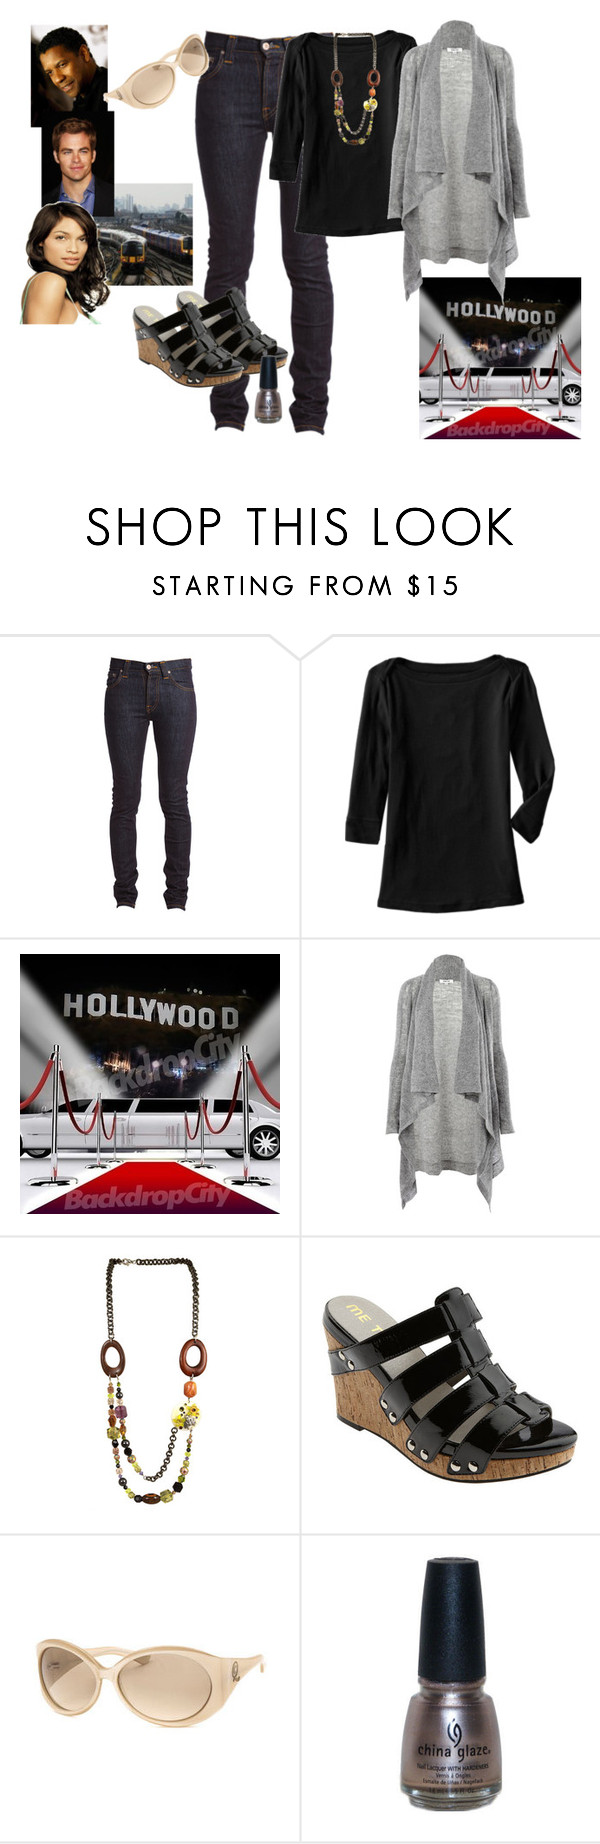 """""Unstoppable"" premiere"" by helenadelaide ❤ liked on Polyvore featuring Nudie Jeans Co., Old Navy, Helmut Lang, Tarina Tarantino, LIST, Local Celebrity, Me Too, Alexander McQueen, Glaze and skinny jeans"